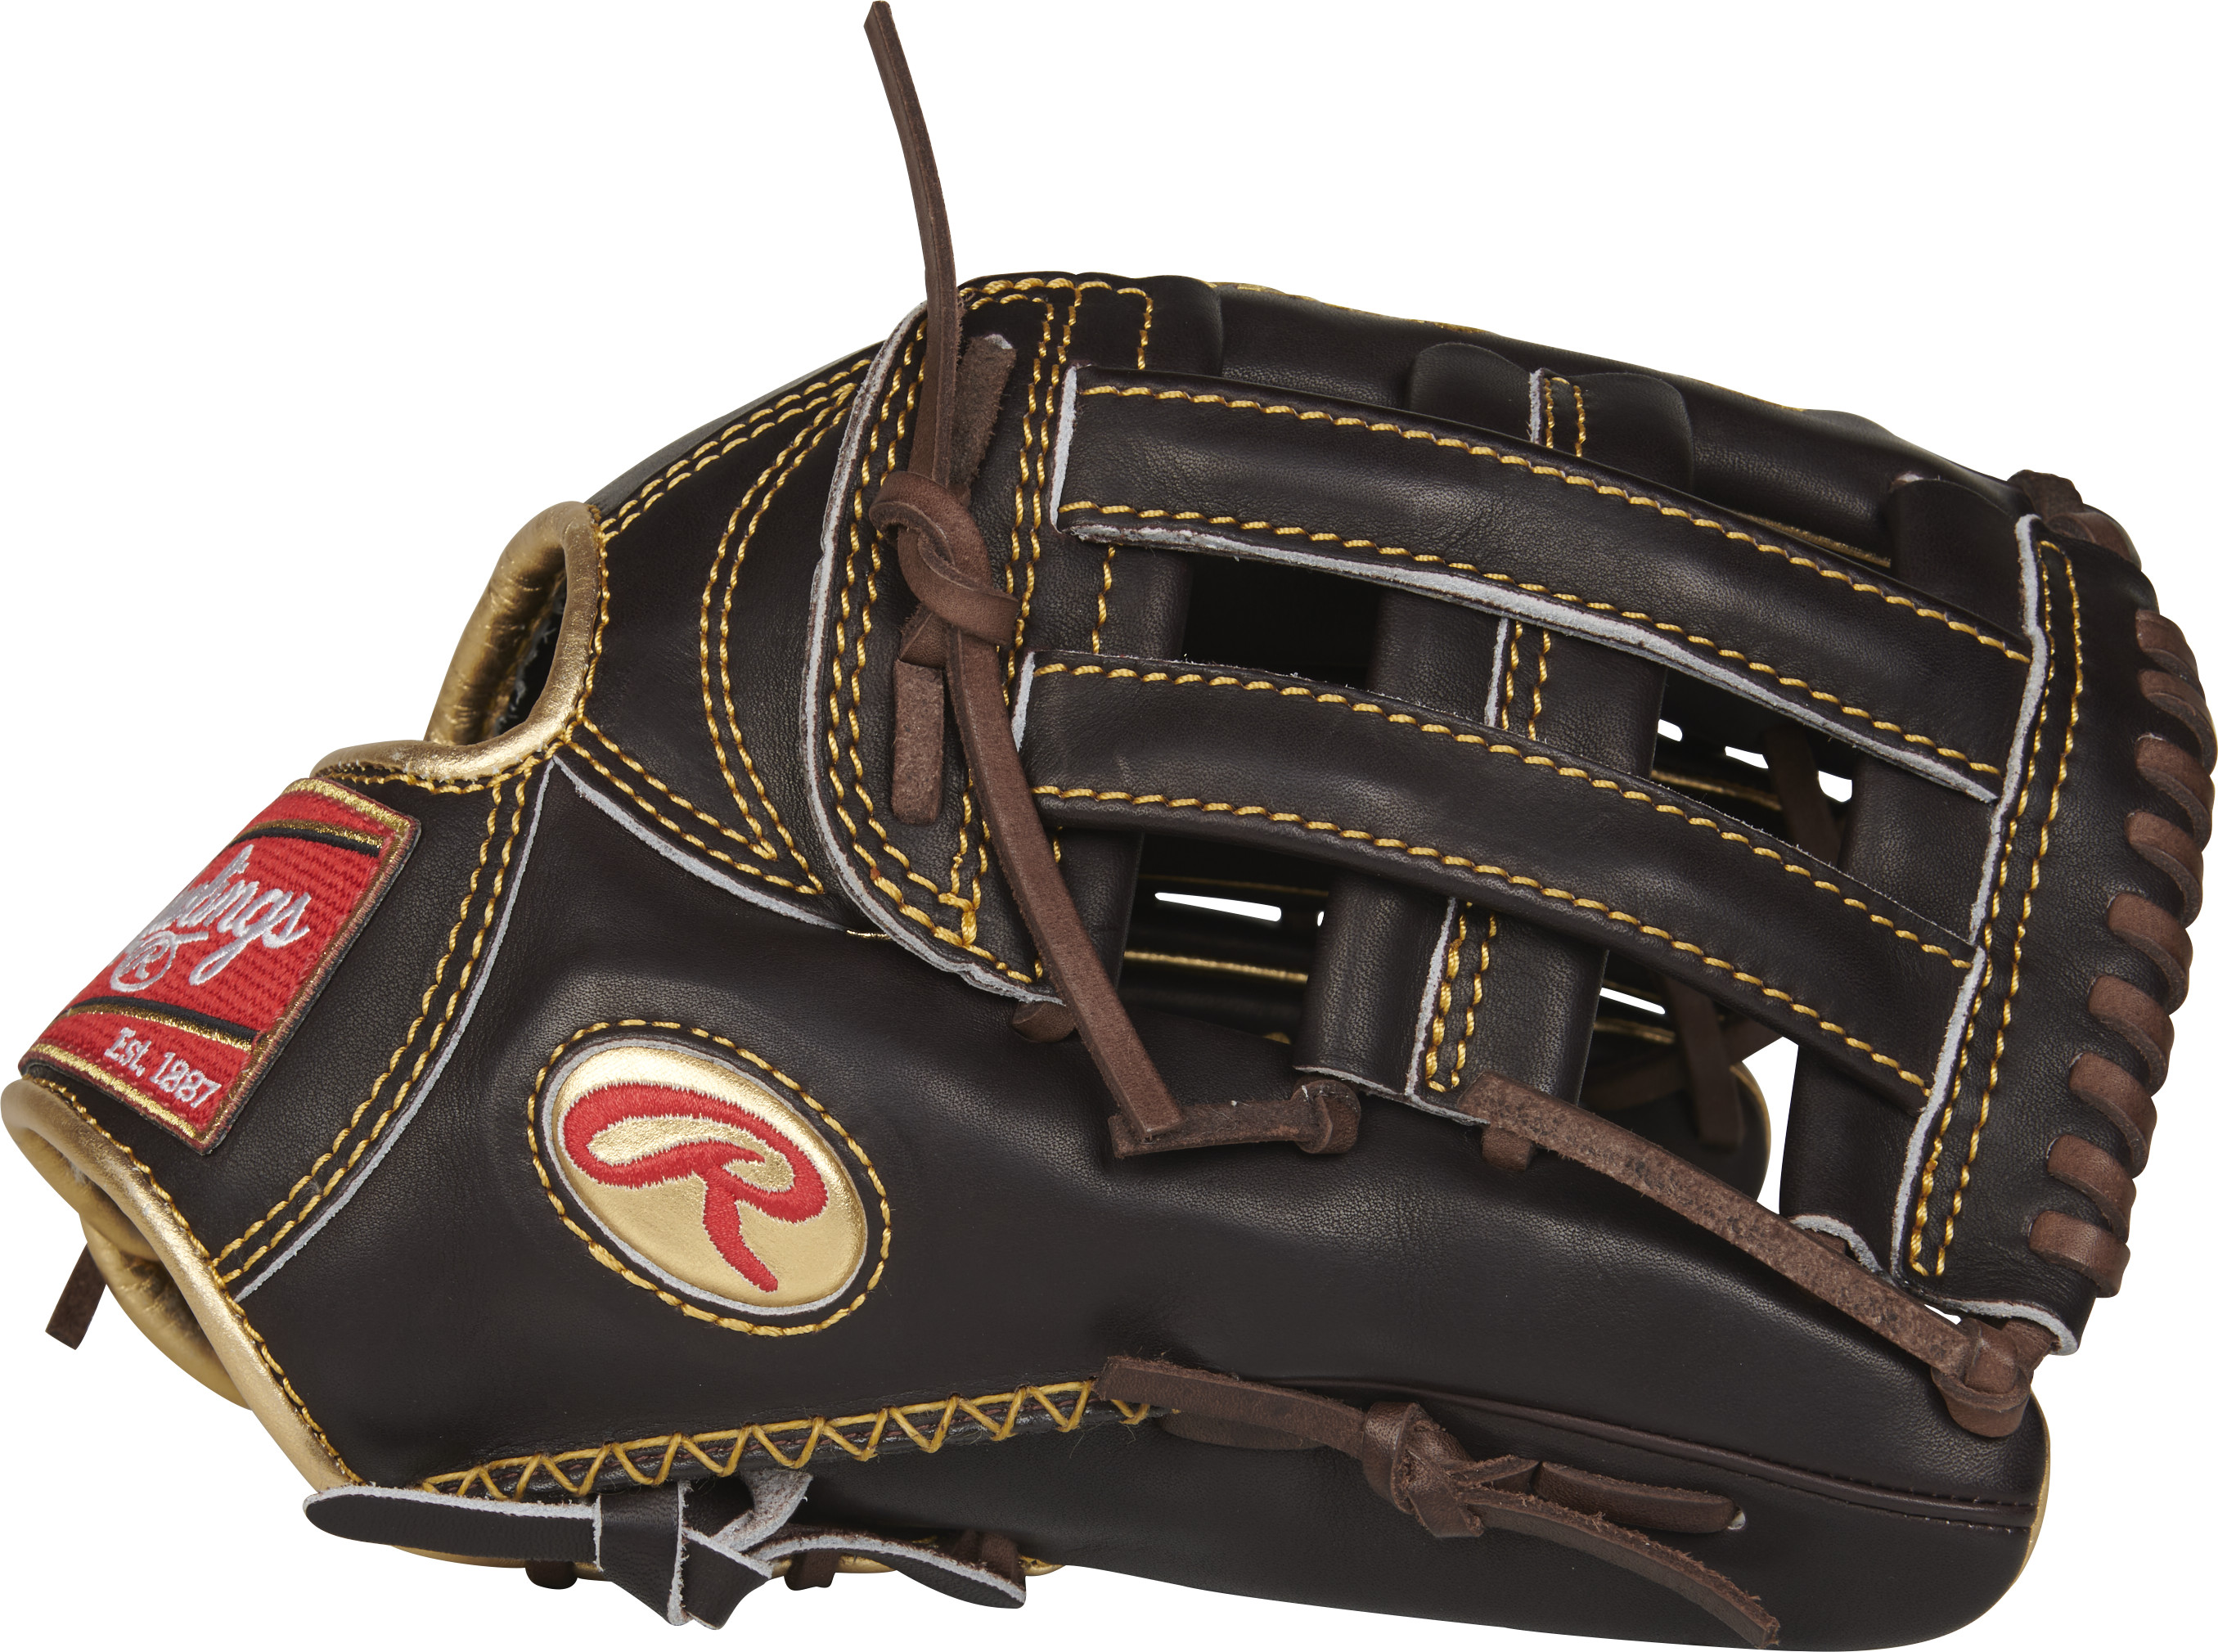 http://www.bestbatdeals.com/images/gloves/rawlings/RGG3039-6MO-3.jpg